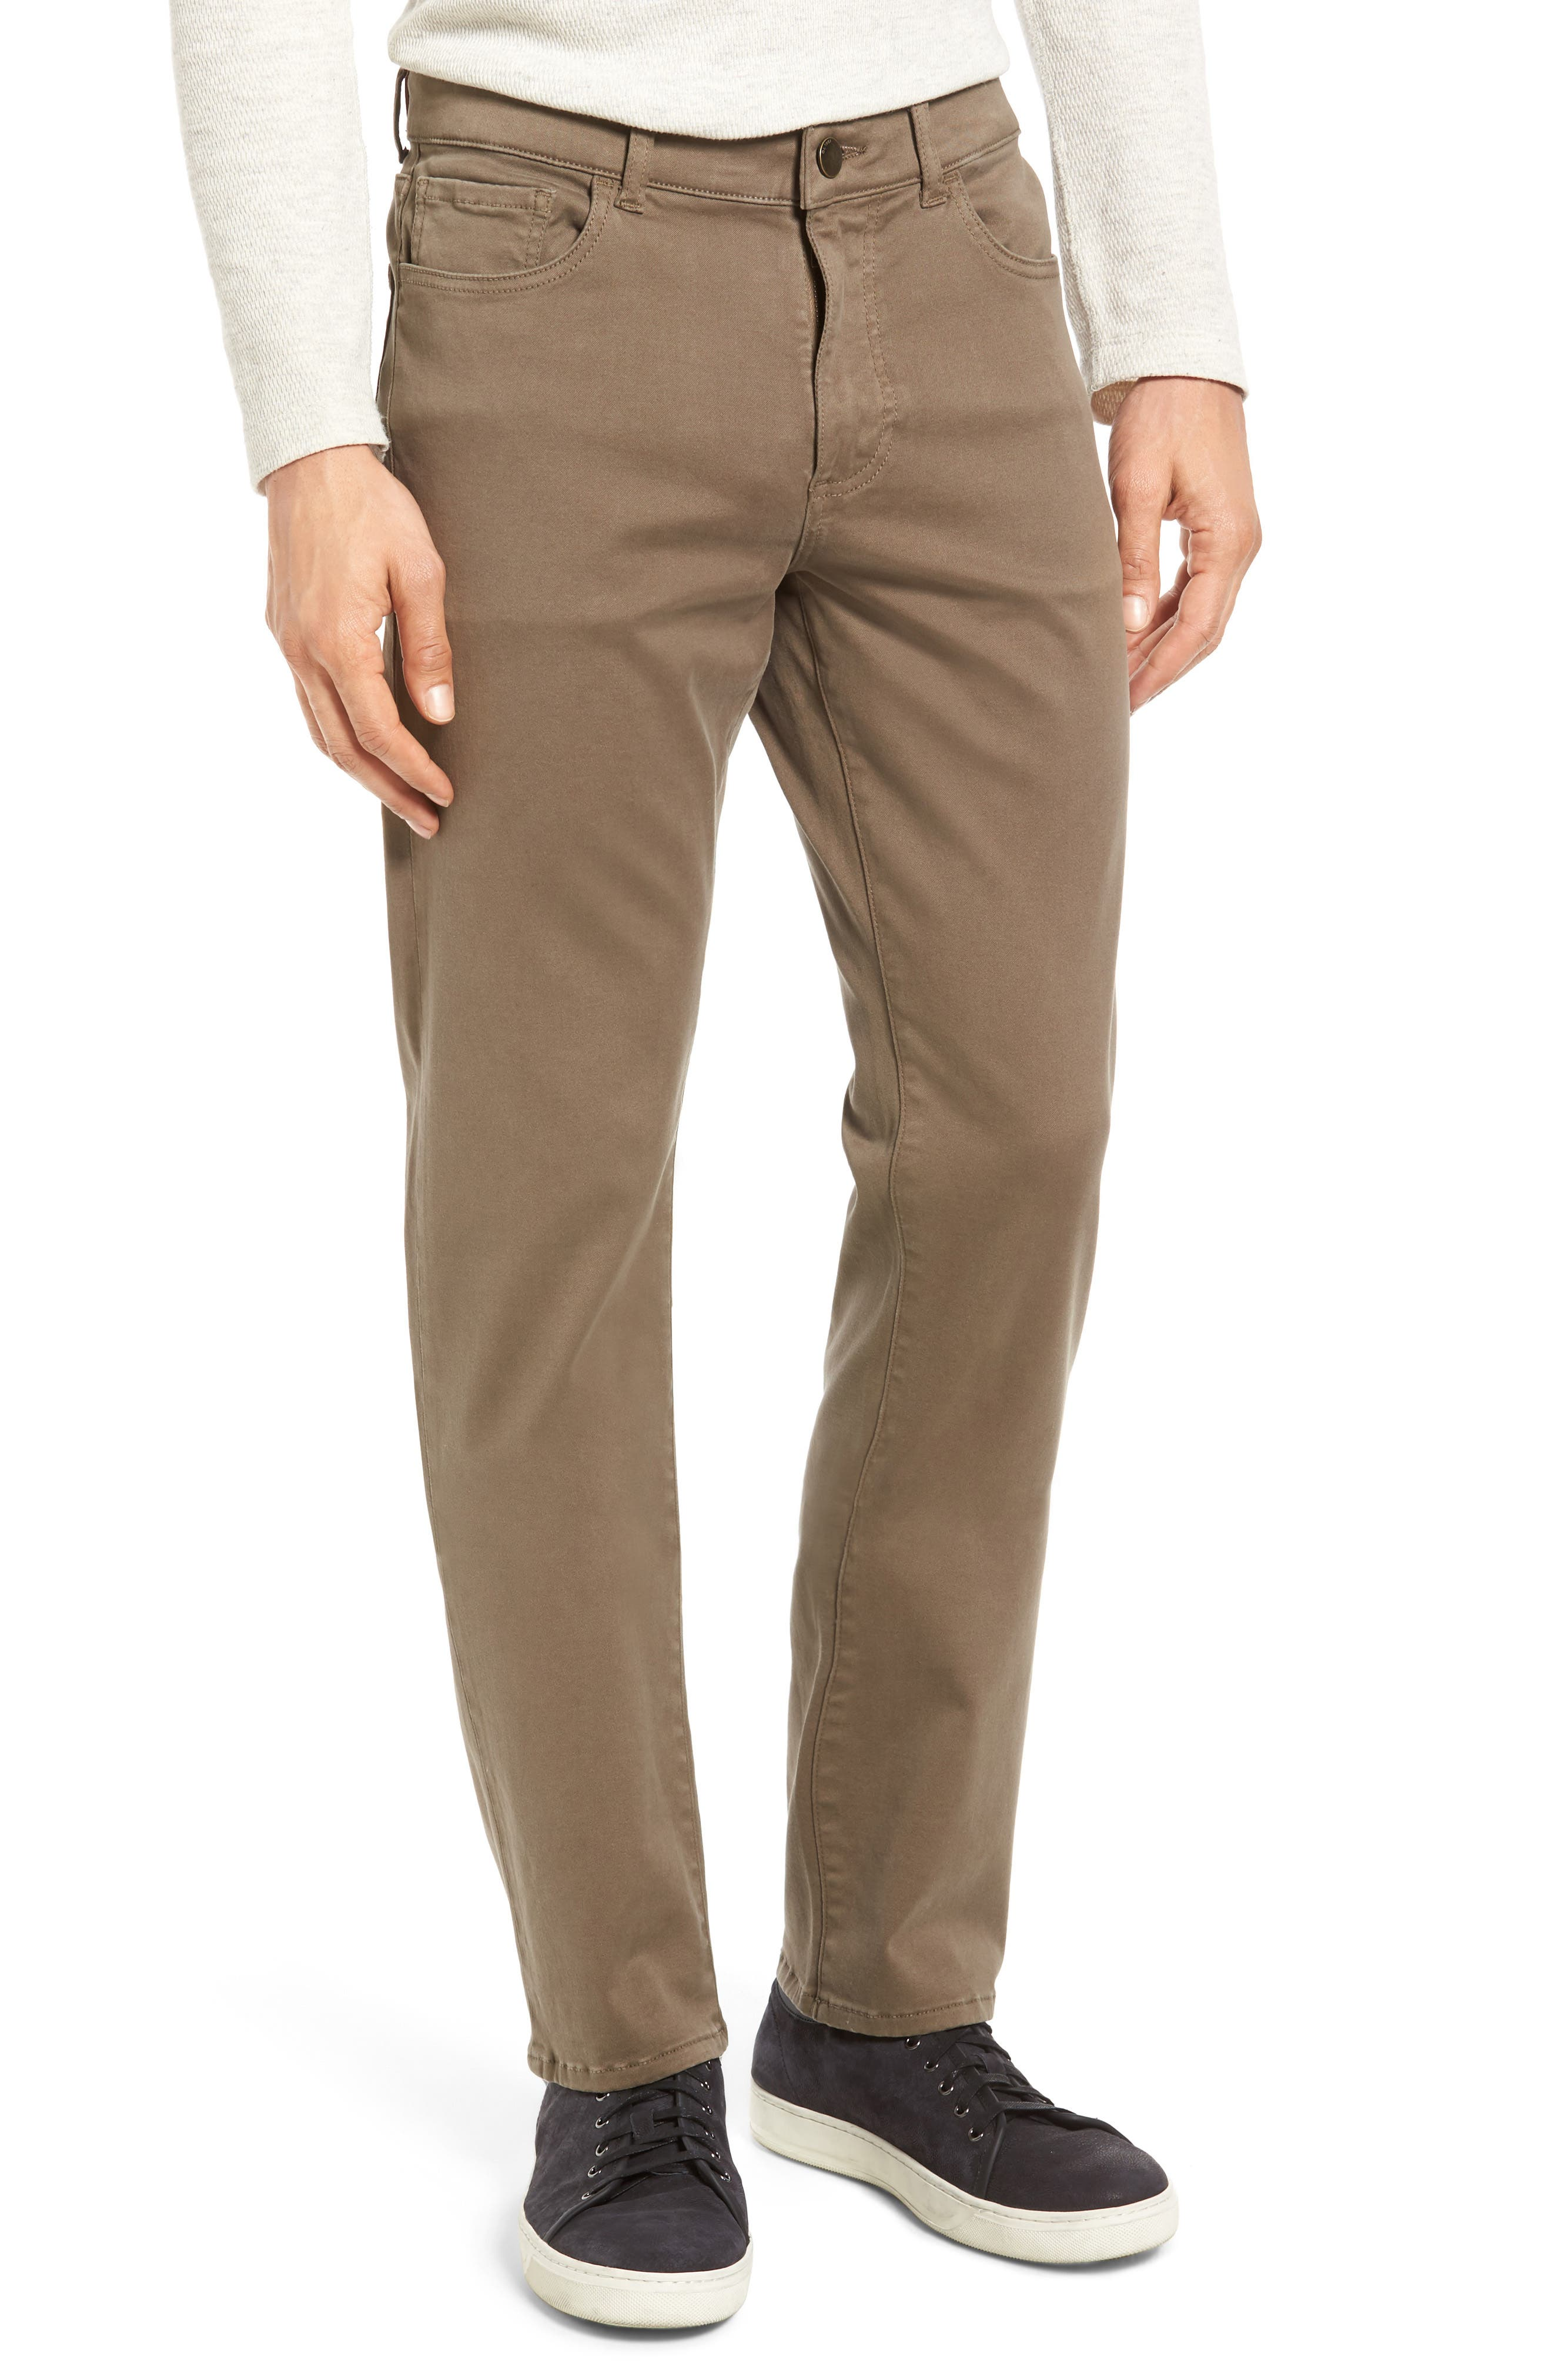 DL1961 1961 Russell Slim Fit Sateen Twill Pants in Coyote